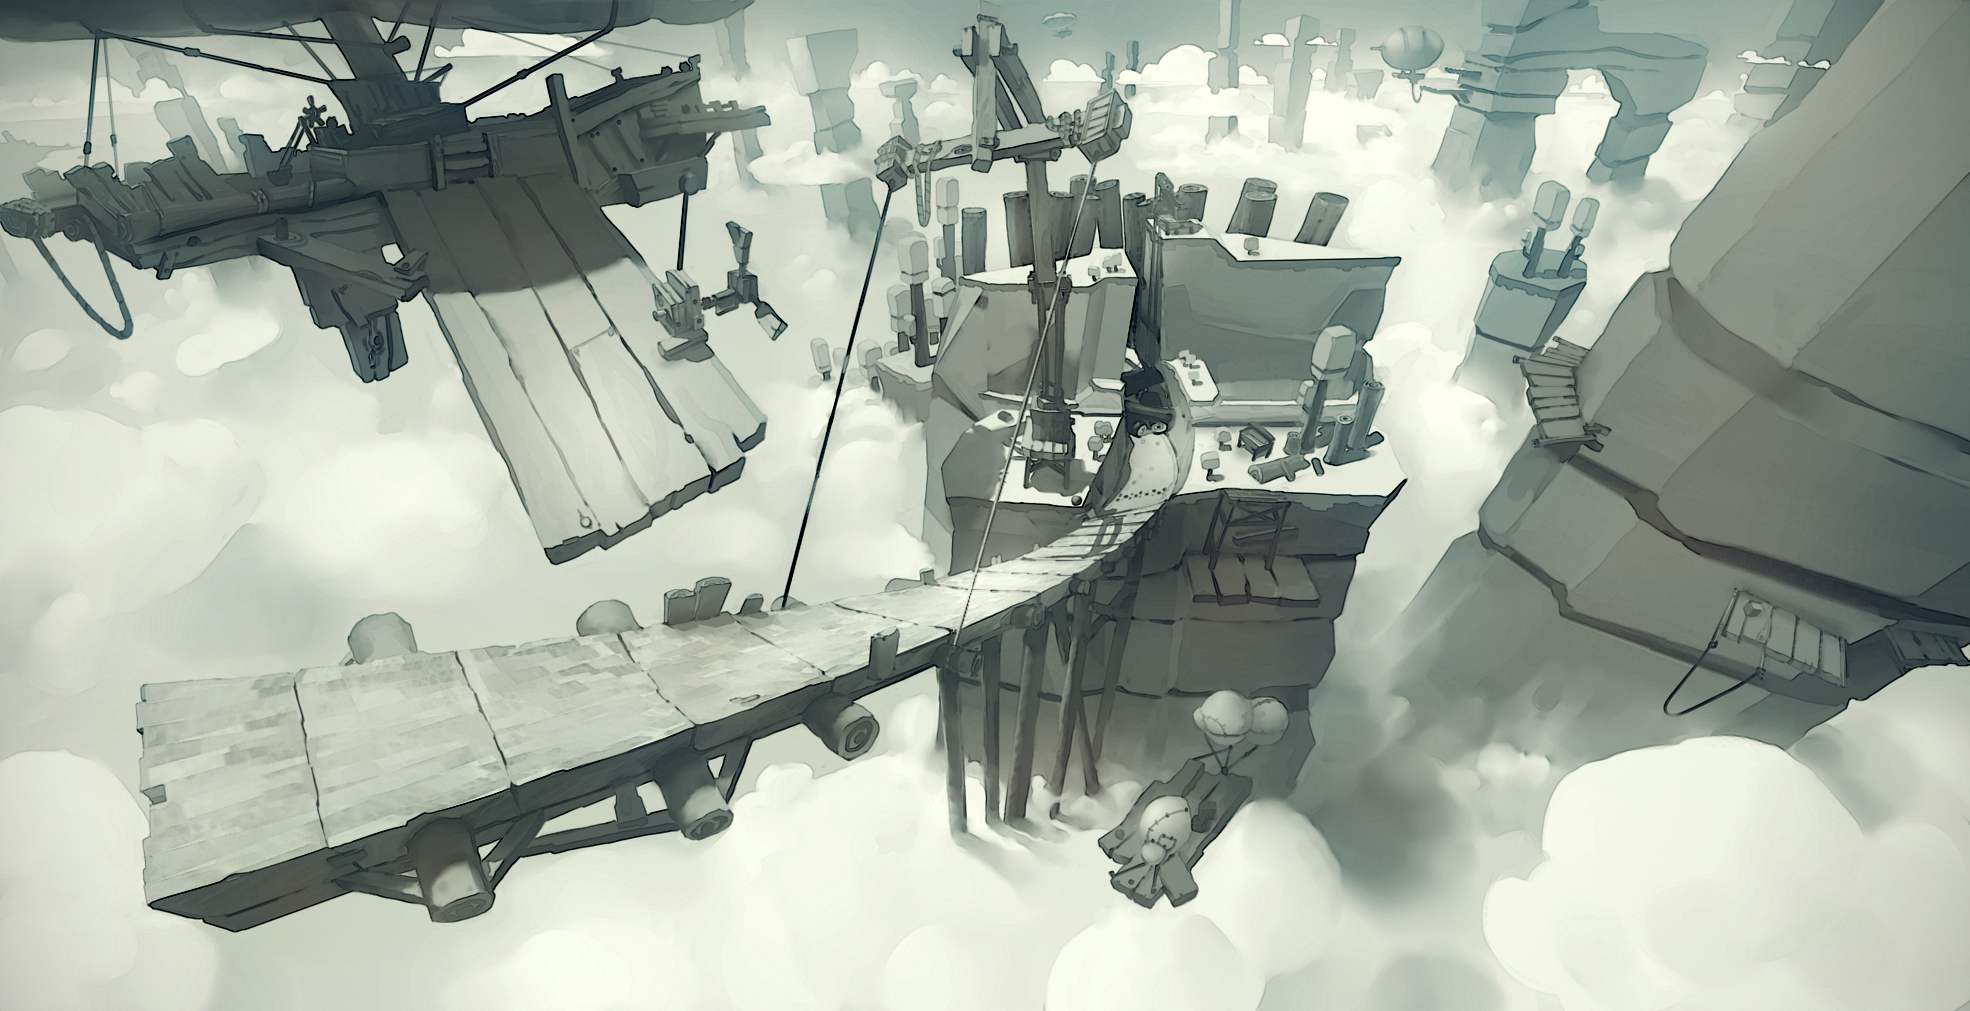 Check out this concept art for environments and tracks in Angry Birds Go!